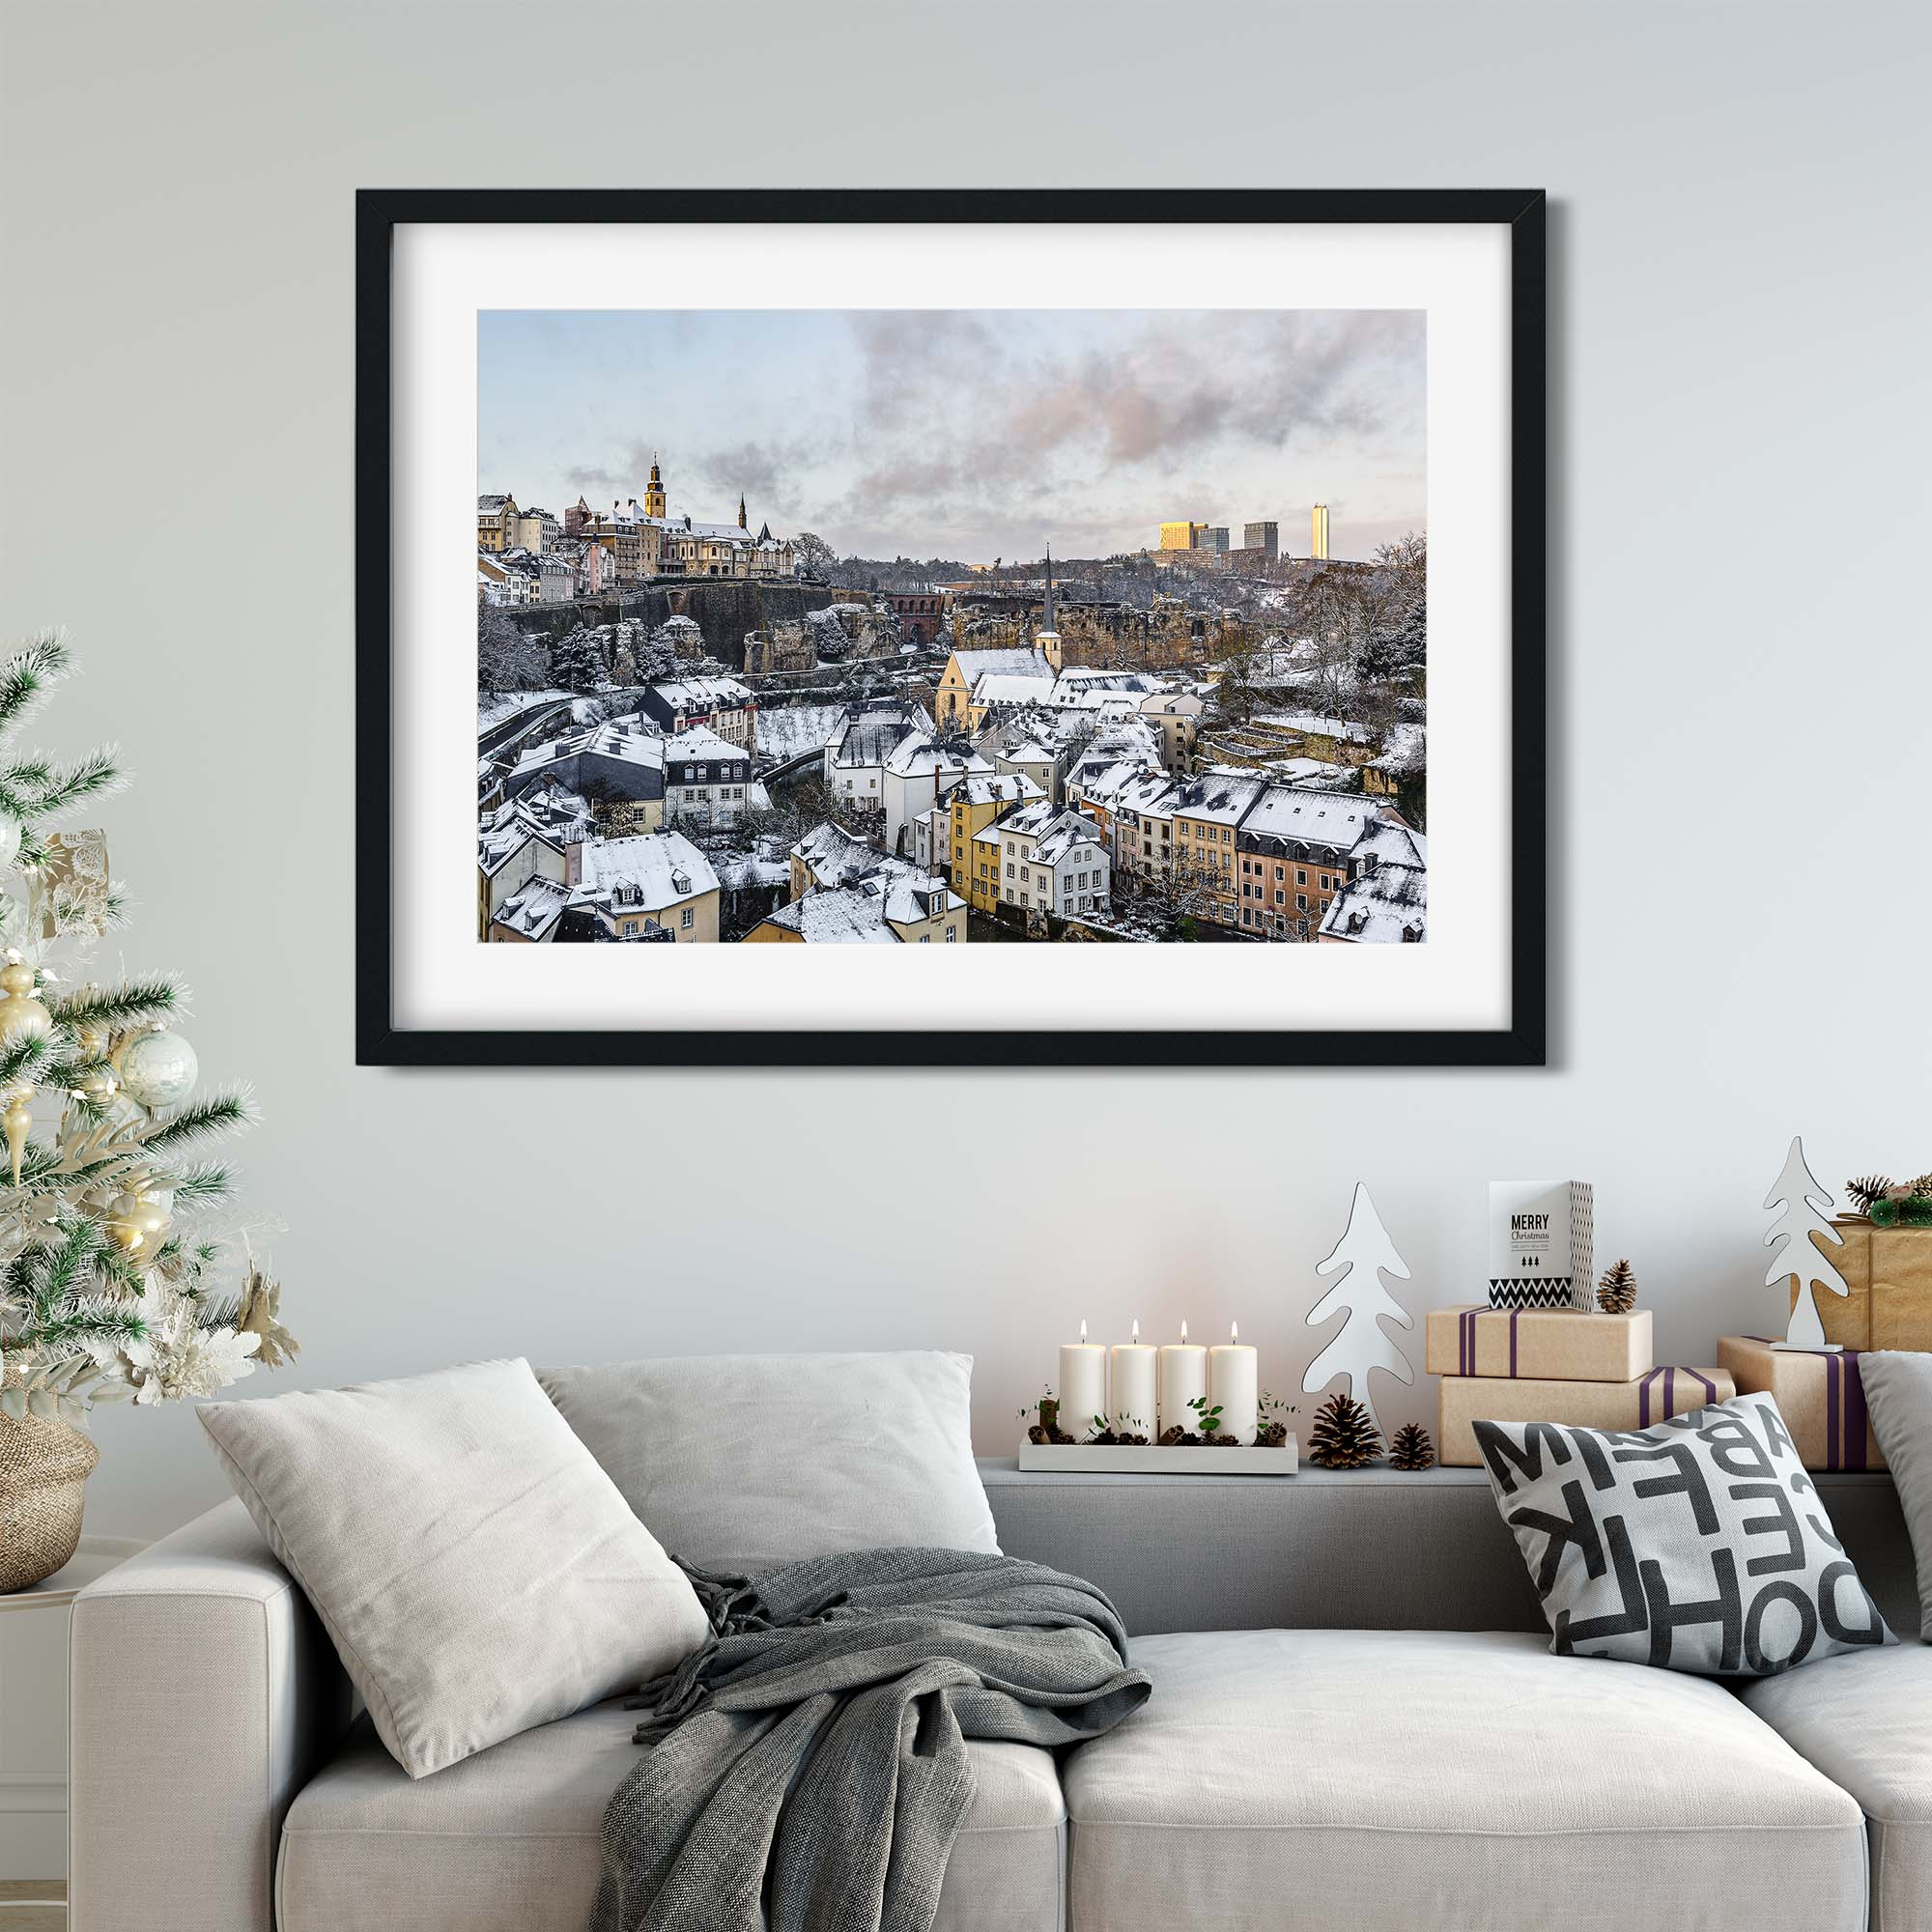 Luxembourg Christmas Gifts - Artworks - Framed Art Print - The Fabled City - Photography by Christophe Van Biesen